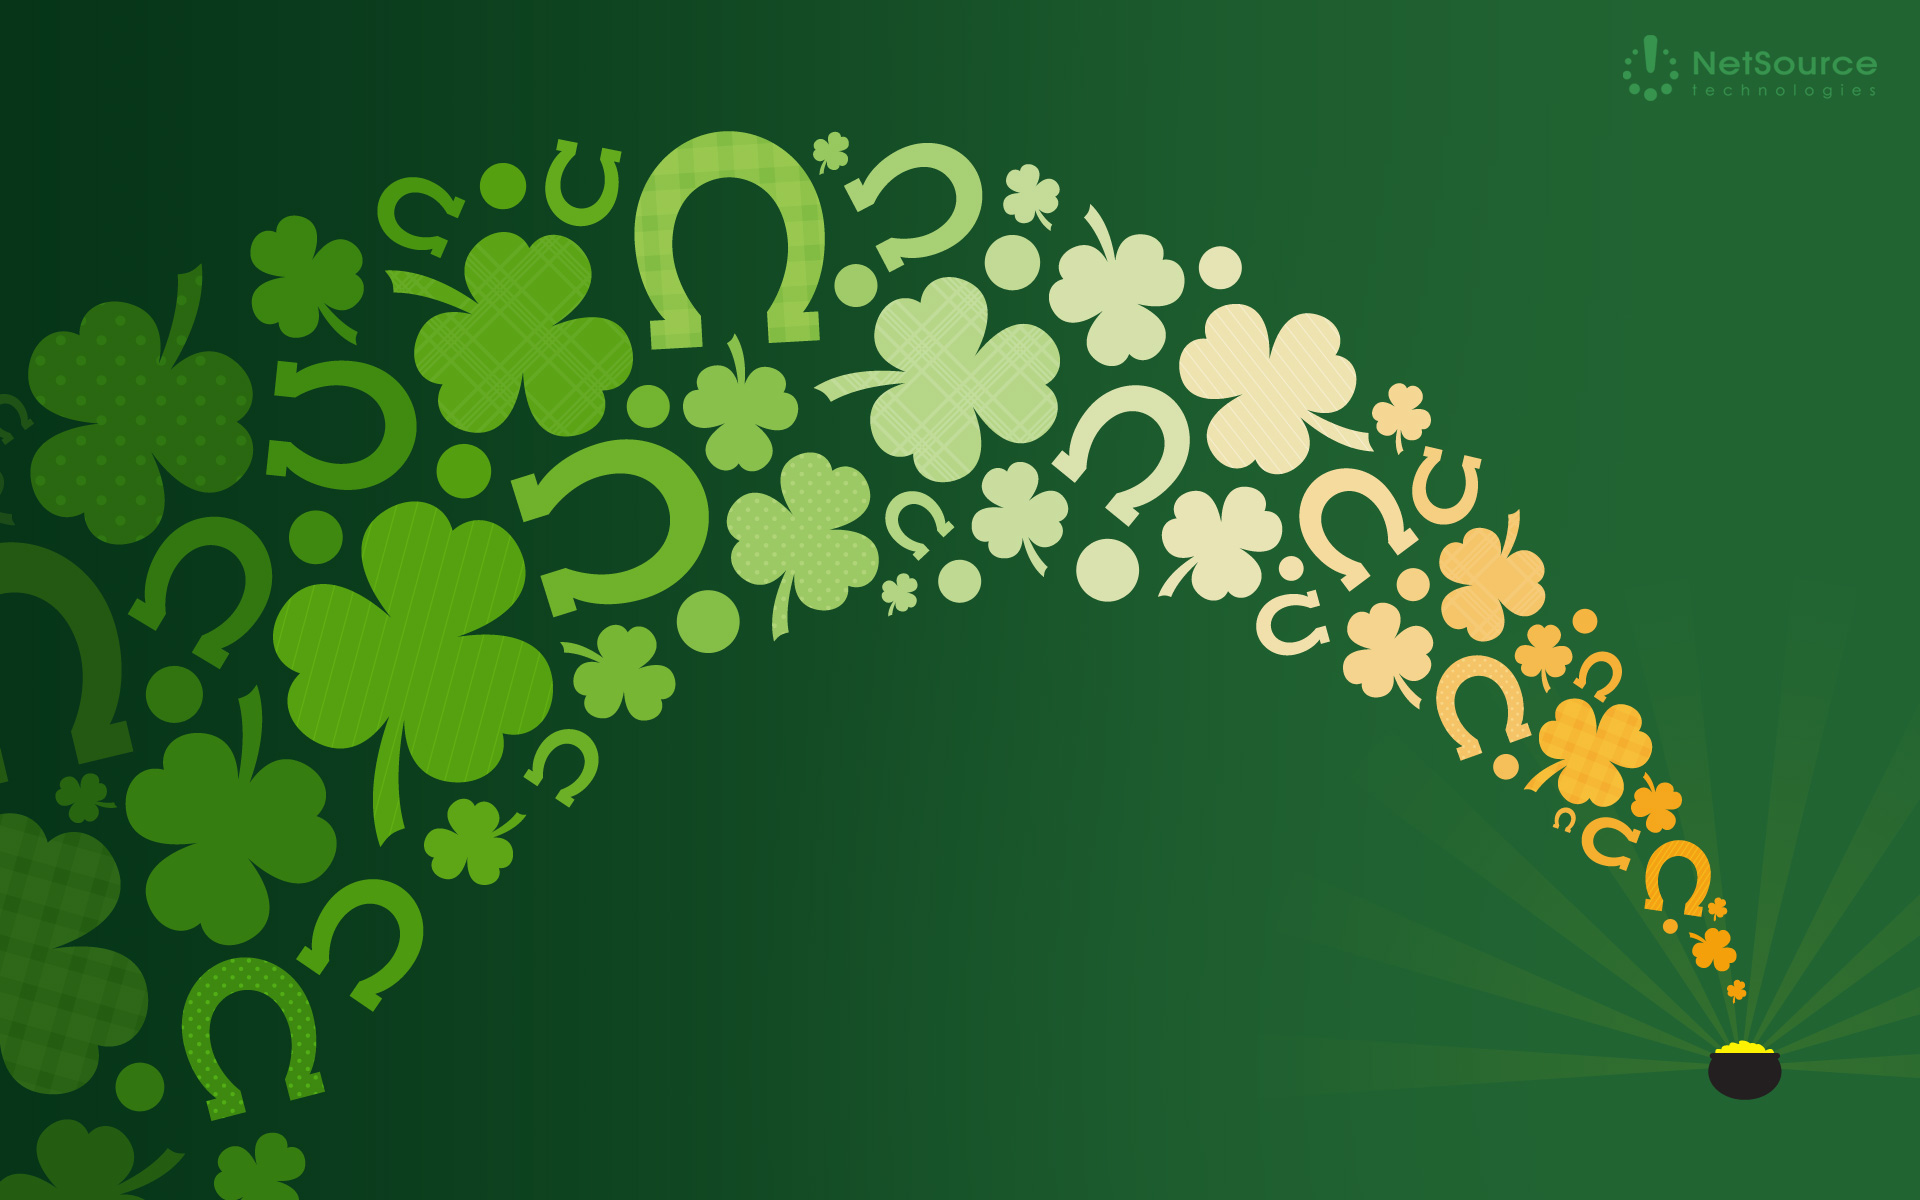 Happy St Patricks Day Wallpaper 2015 (Funny, Quotes)